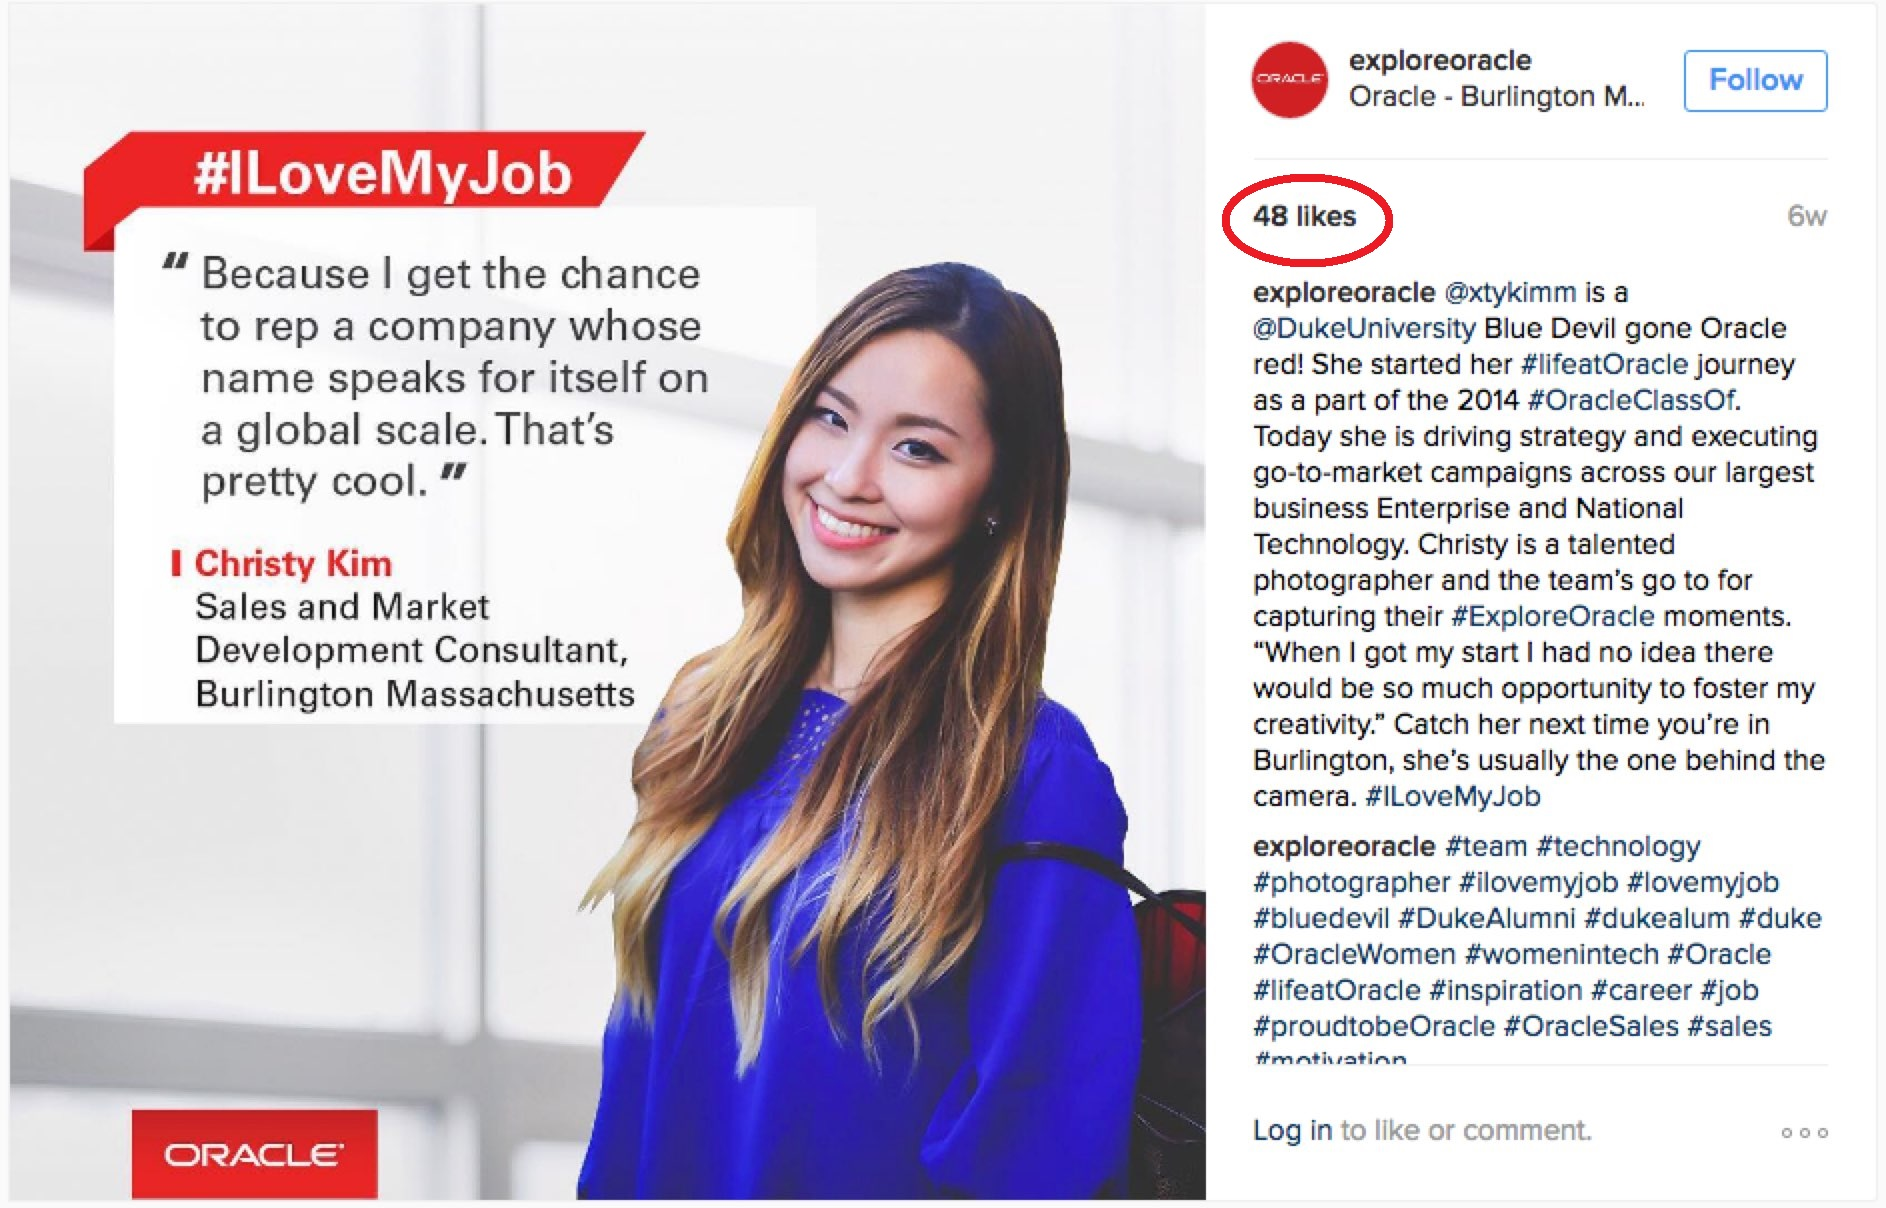 using instragram to promote employer brand